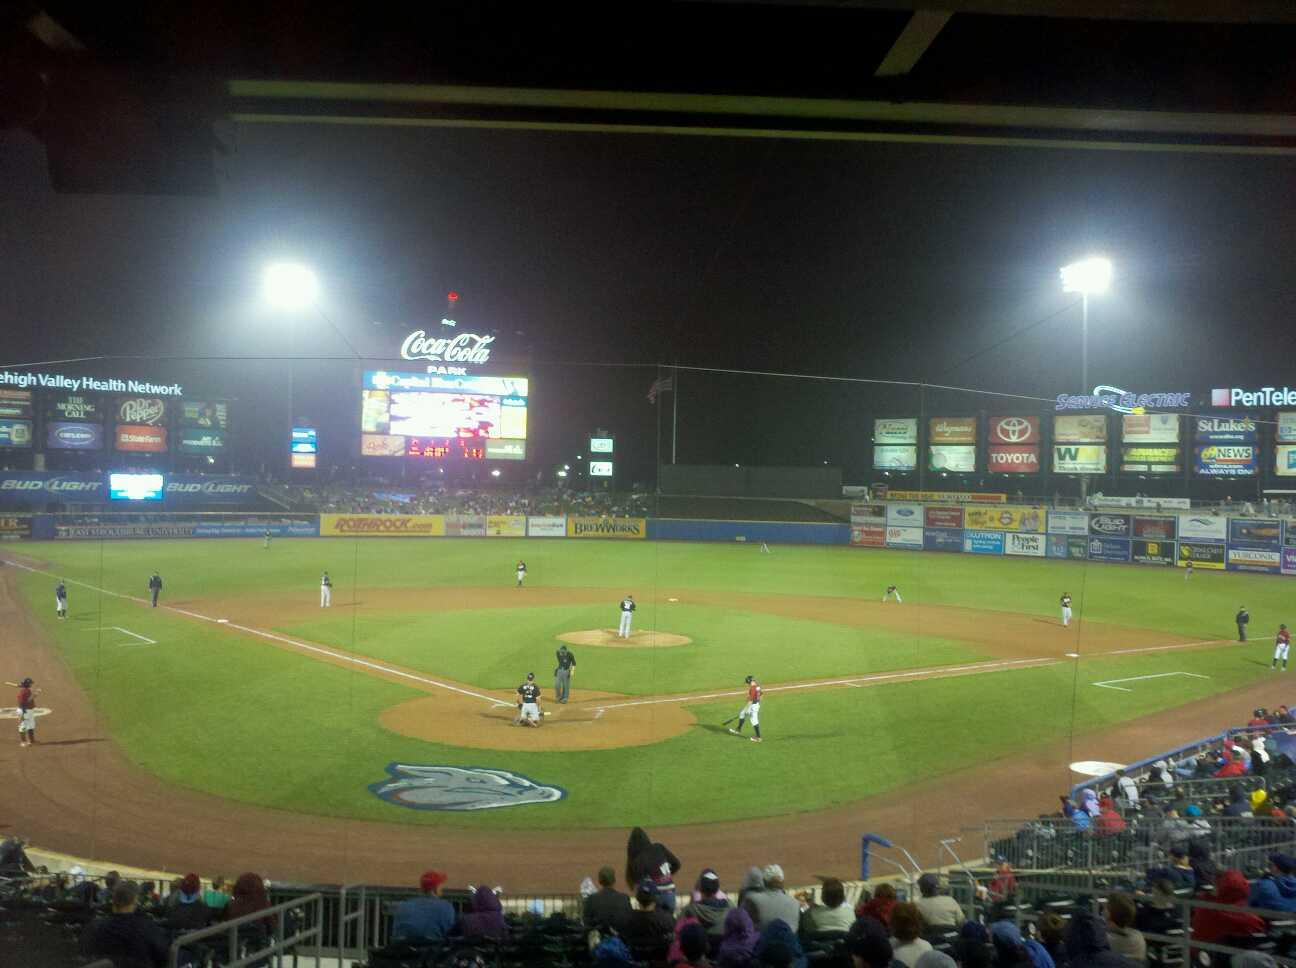 Coca-Cola Park Section 112 Row ! Seat 8